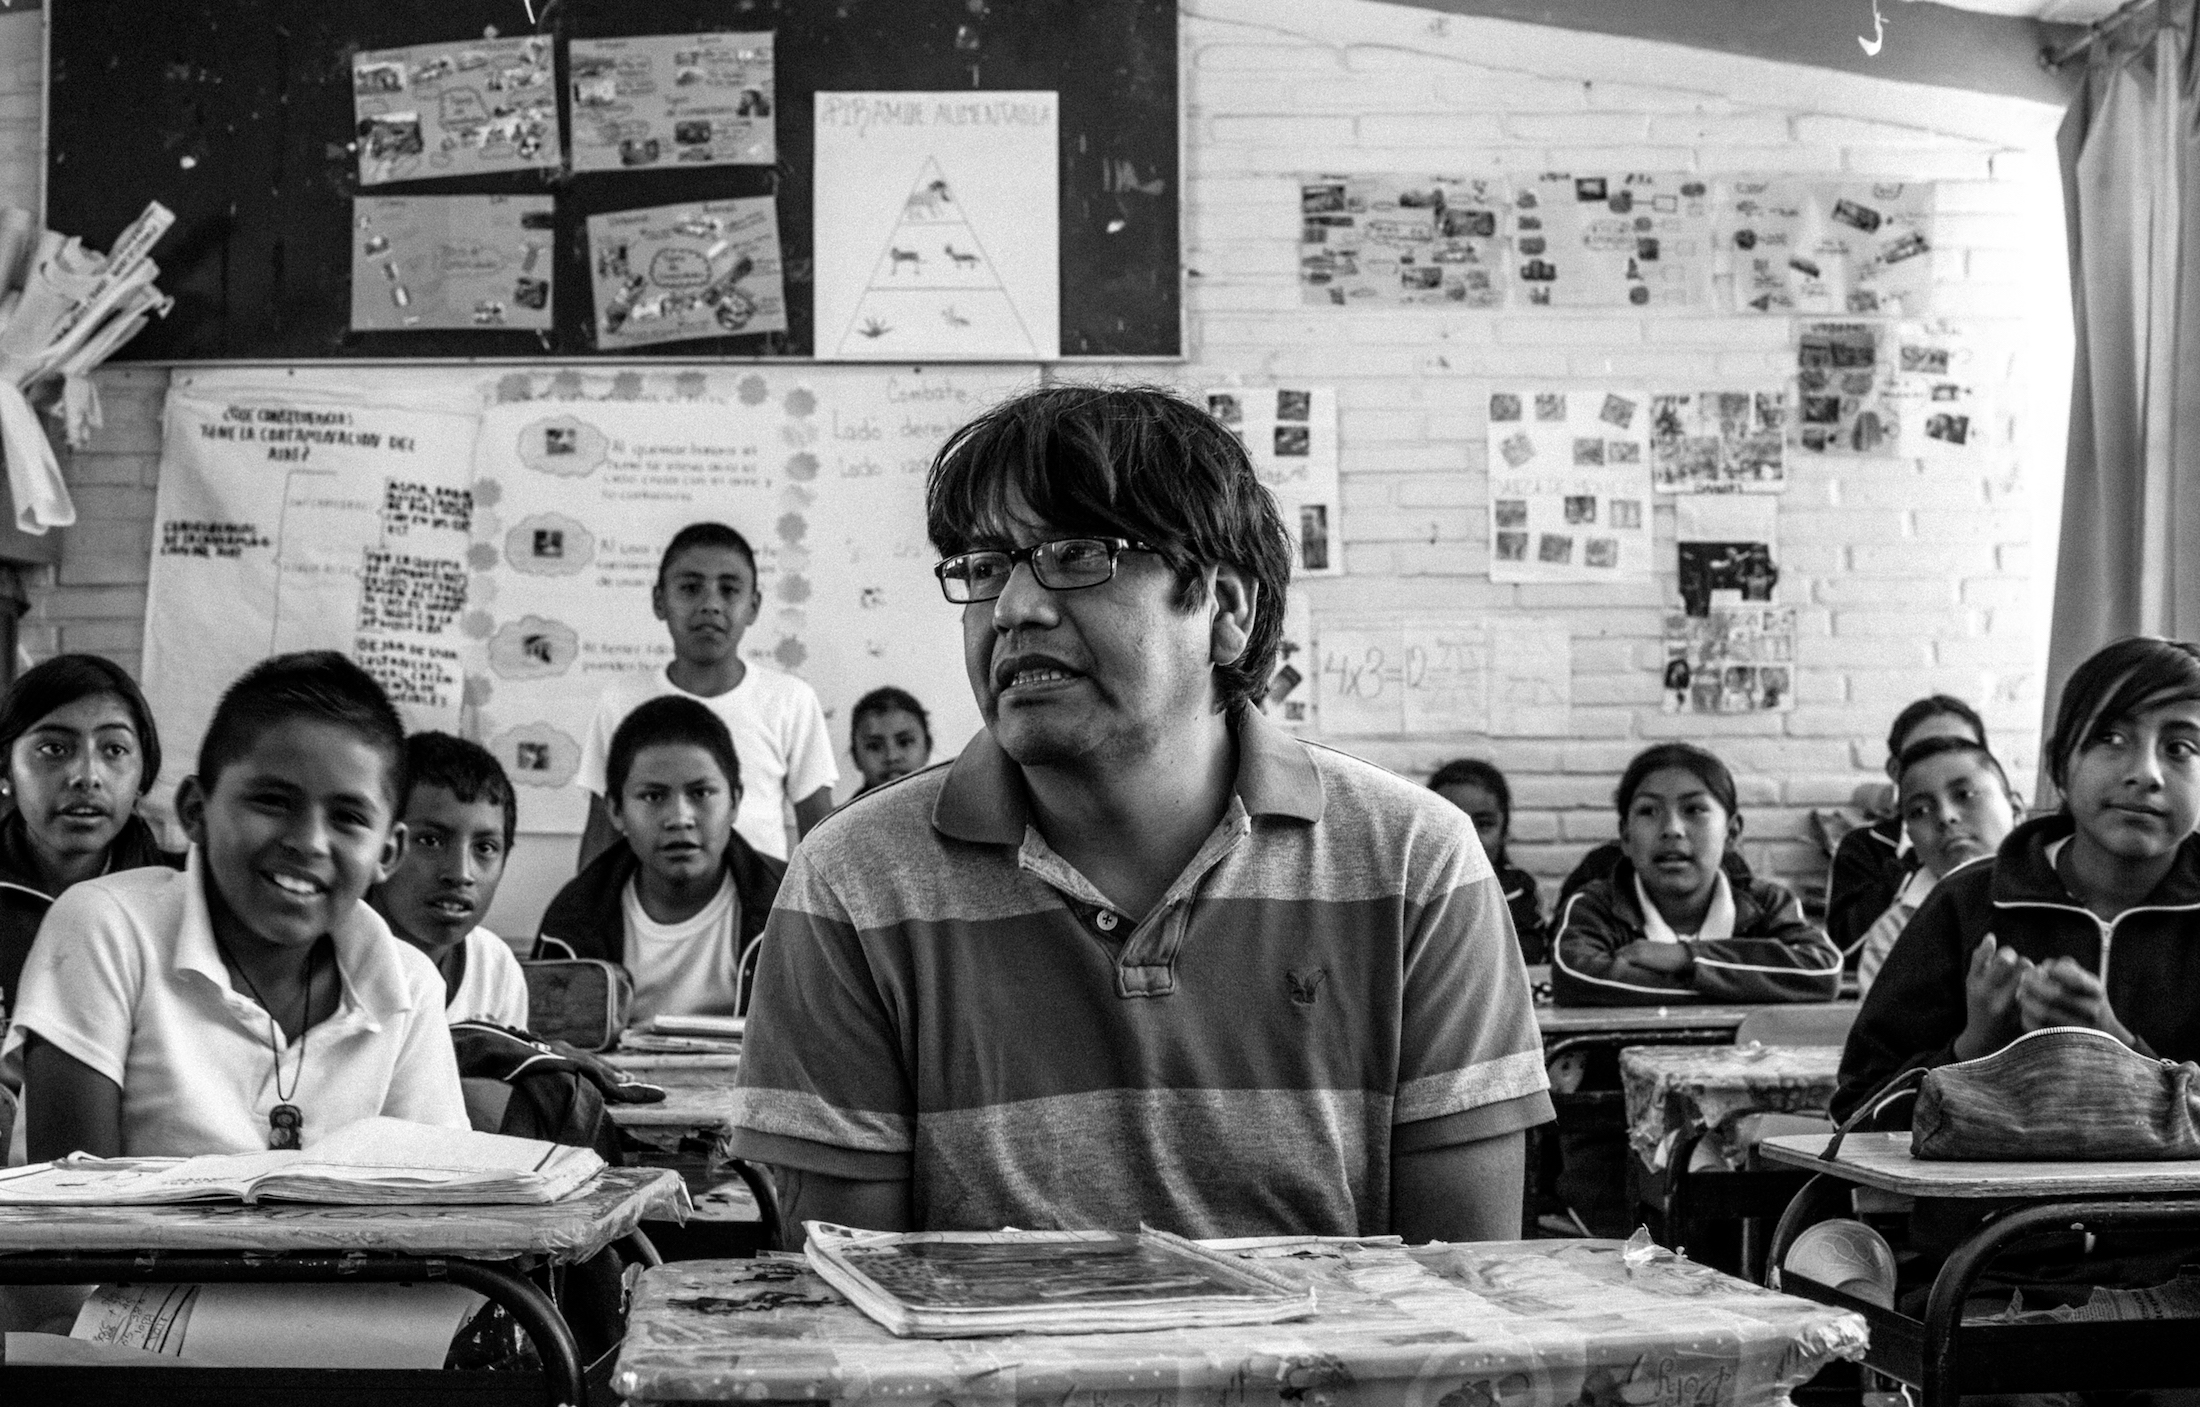 During his time in Mexico, Cabrera worked with the University of Puebla helping students who were deported from the United States with their education. (Maite H. Mateo/GroundTruth)